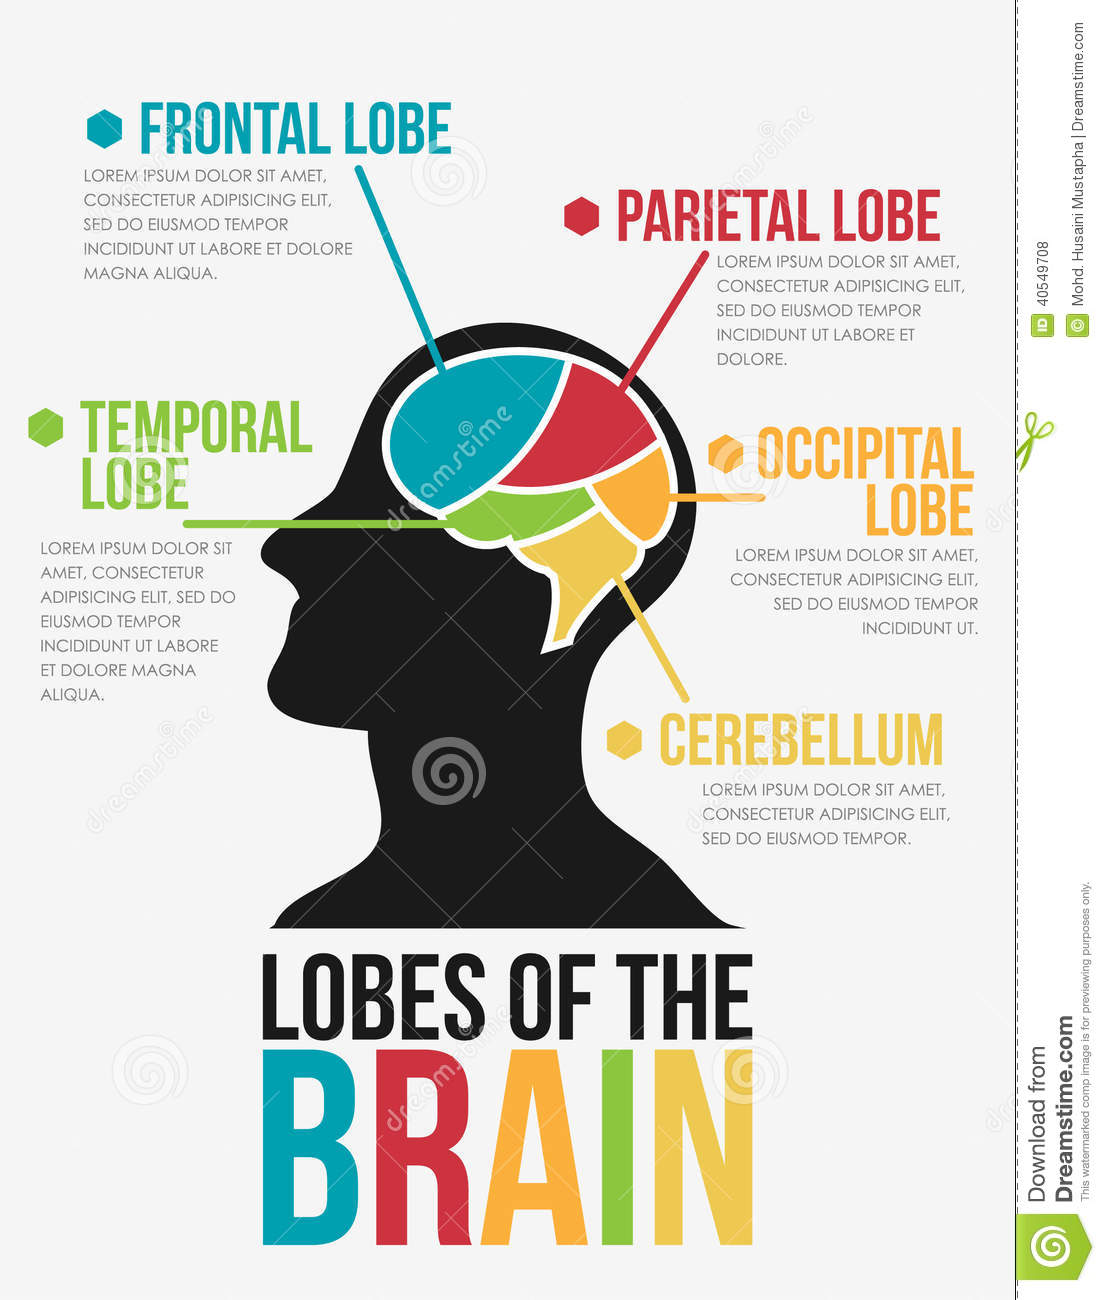 3 basic parts of the brain